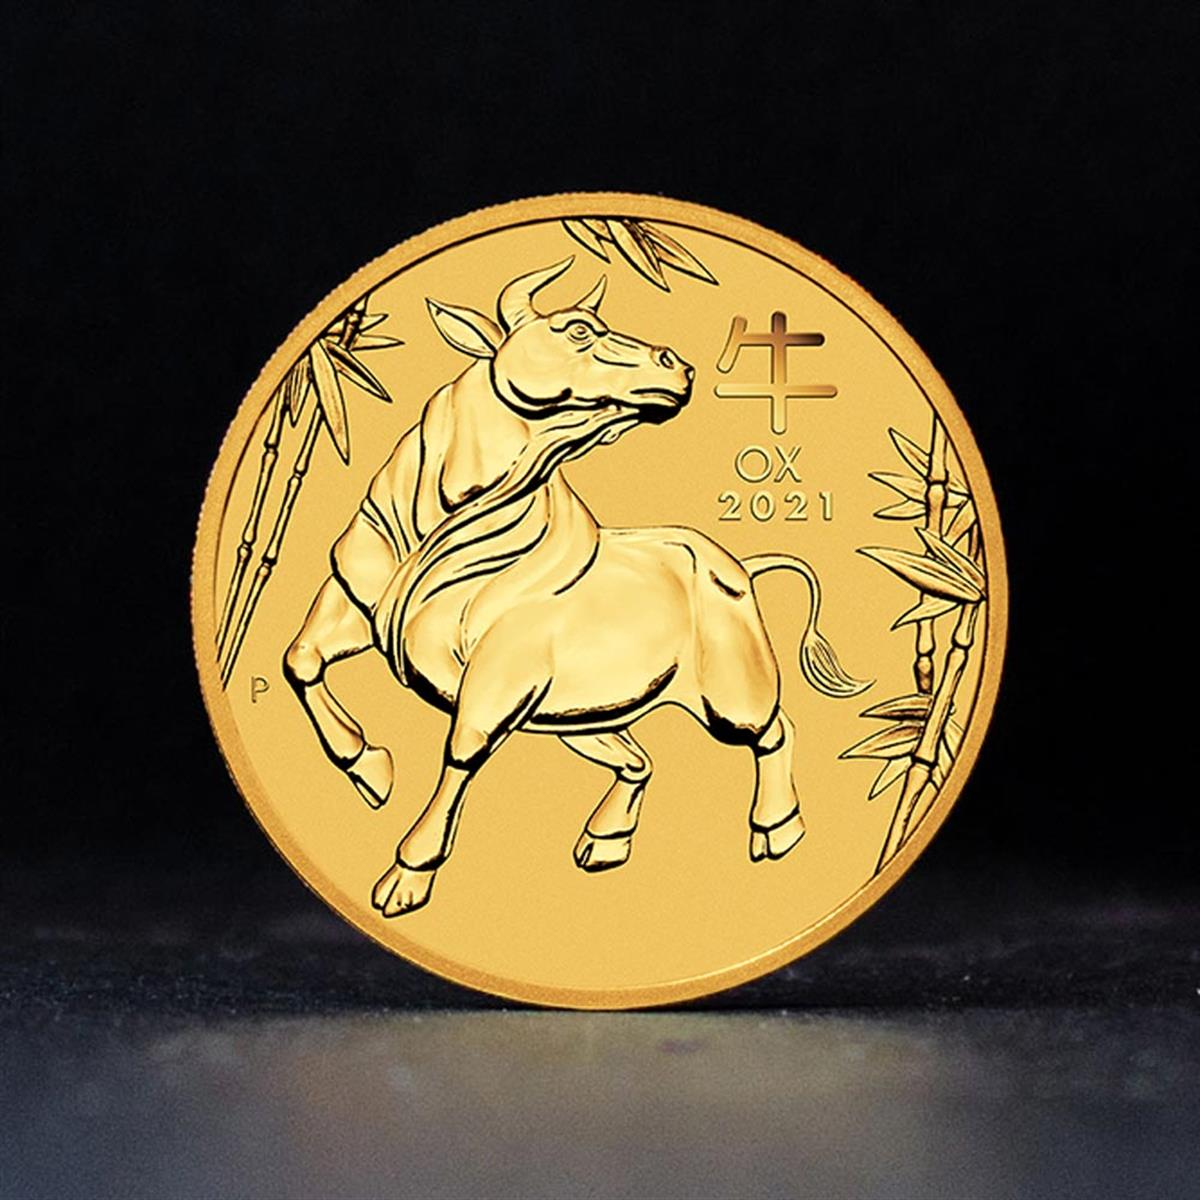 2oz Gold Coin 2021 Year of the Ox - Perth Mint